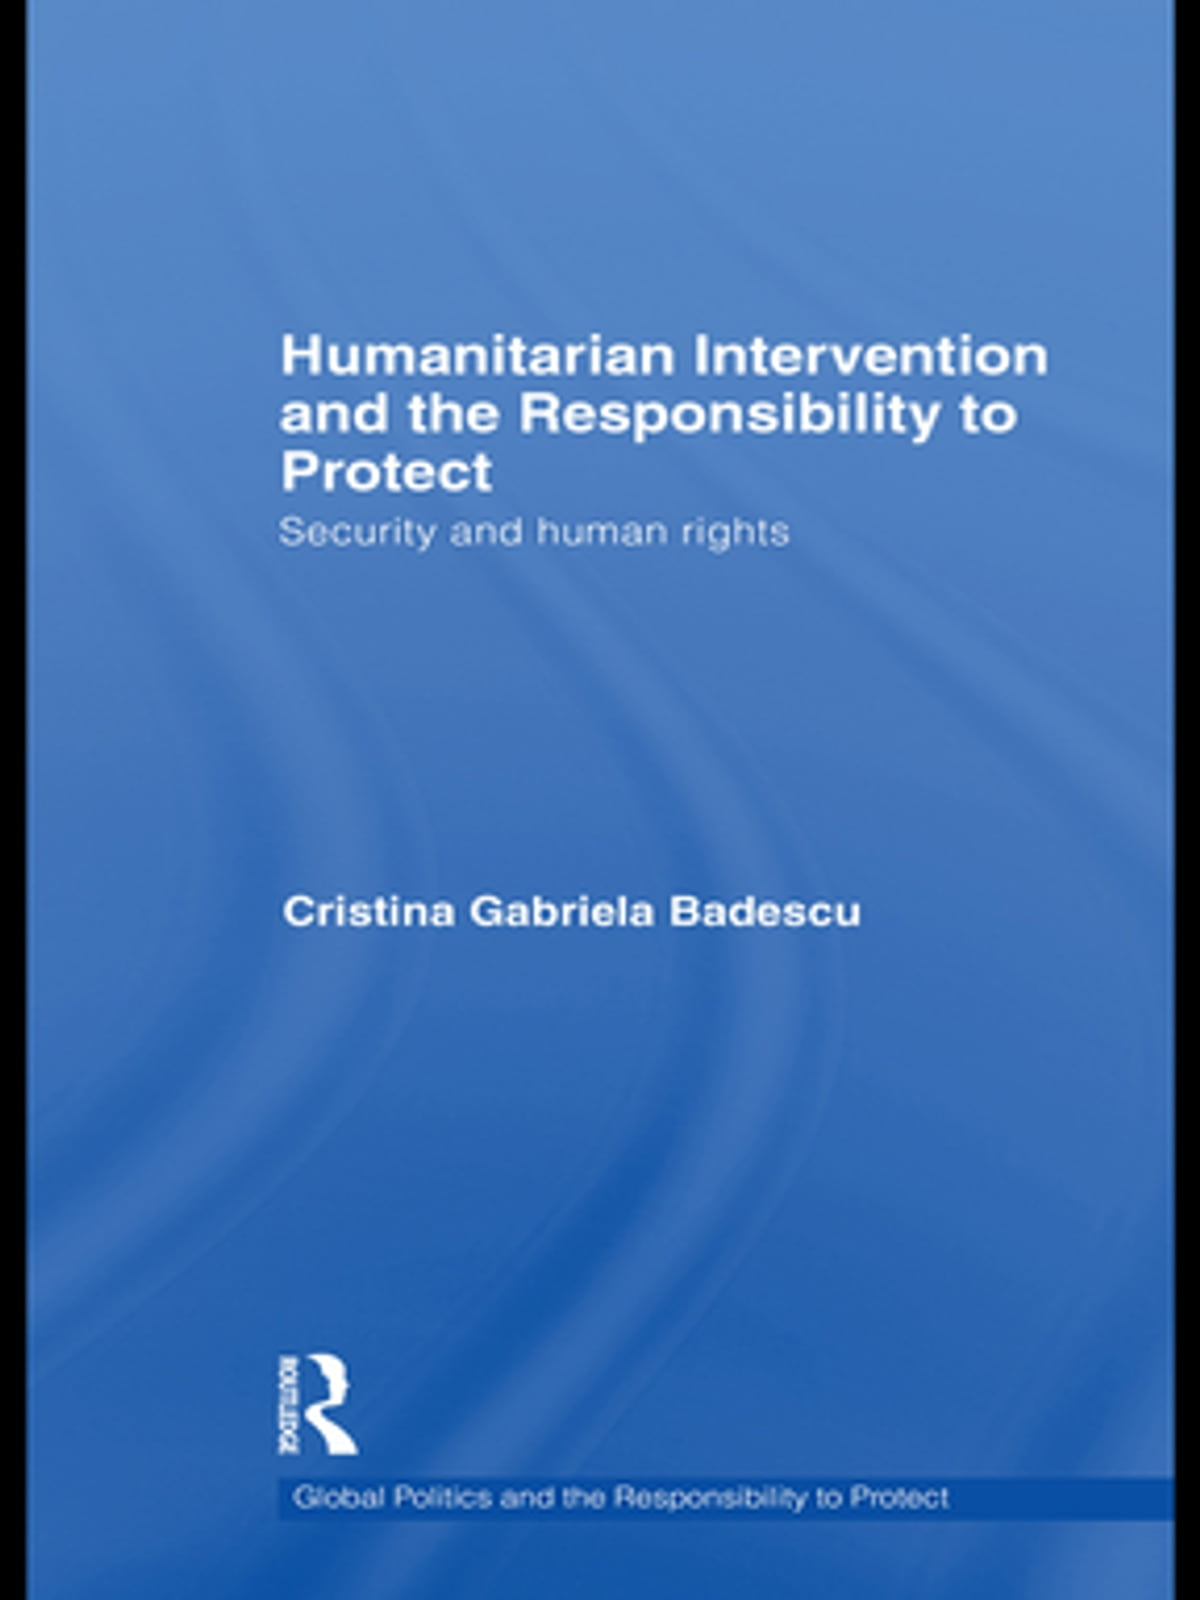 humanitarian intervention essay questions Introduction this essay will point out the definition of humanitarian intervention and the lack of definition or misinterpretation of the legality of humanitarian intervention it will give a historical description on the nature of the conflict in the democratic republic of the congo, the exploitation of the country and the main instigators.